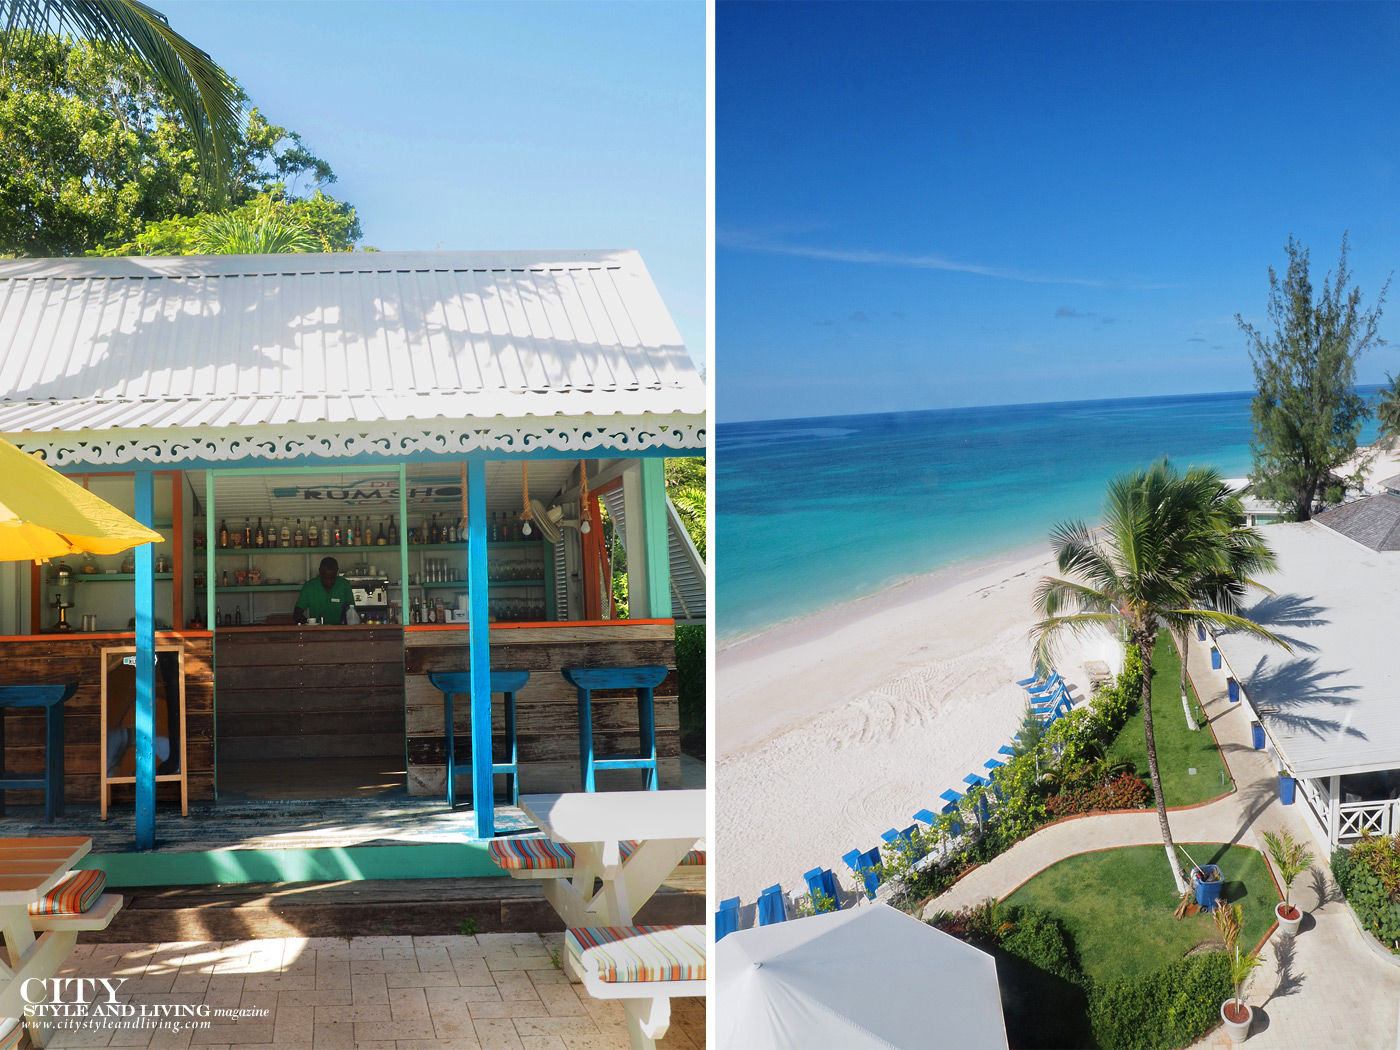 City Style and Living Magazine Winter 2019 Barbados Sea Breeze hotel Kailash Maharaj rum shop and beach